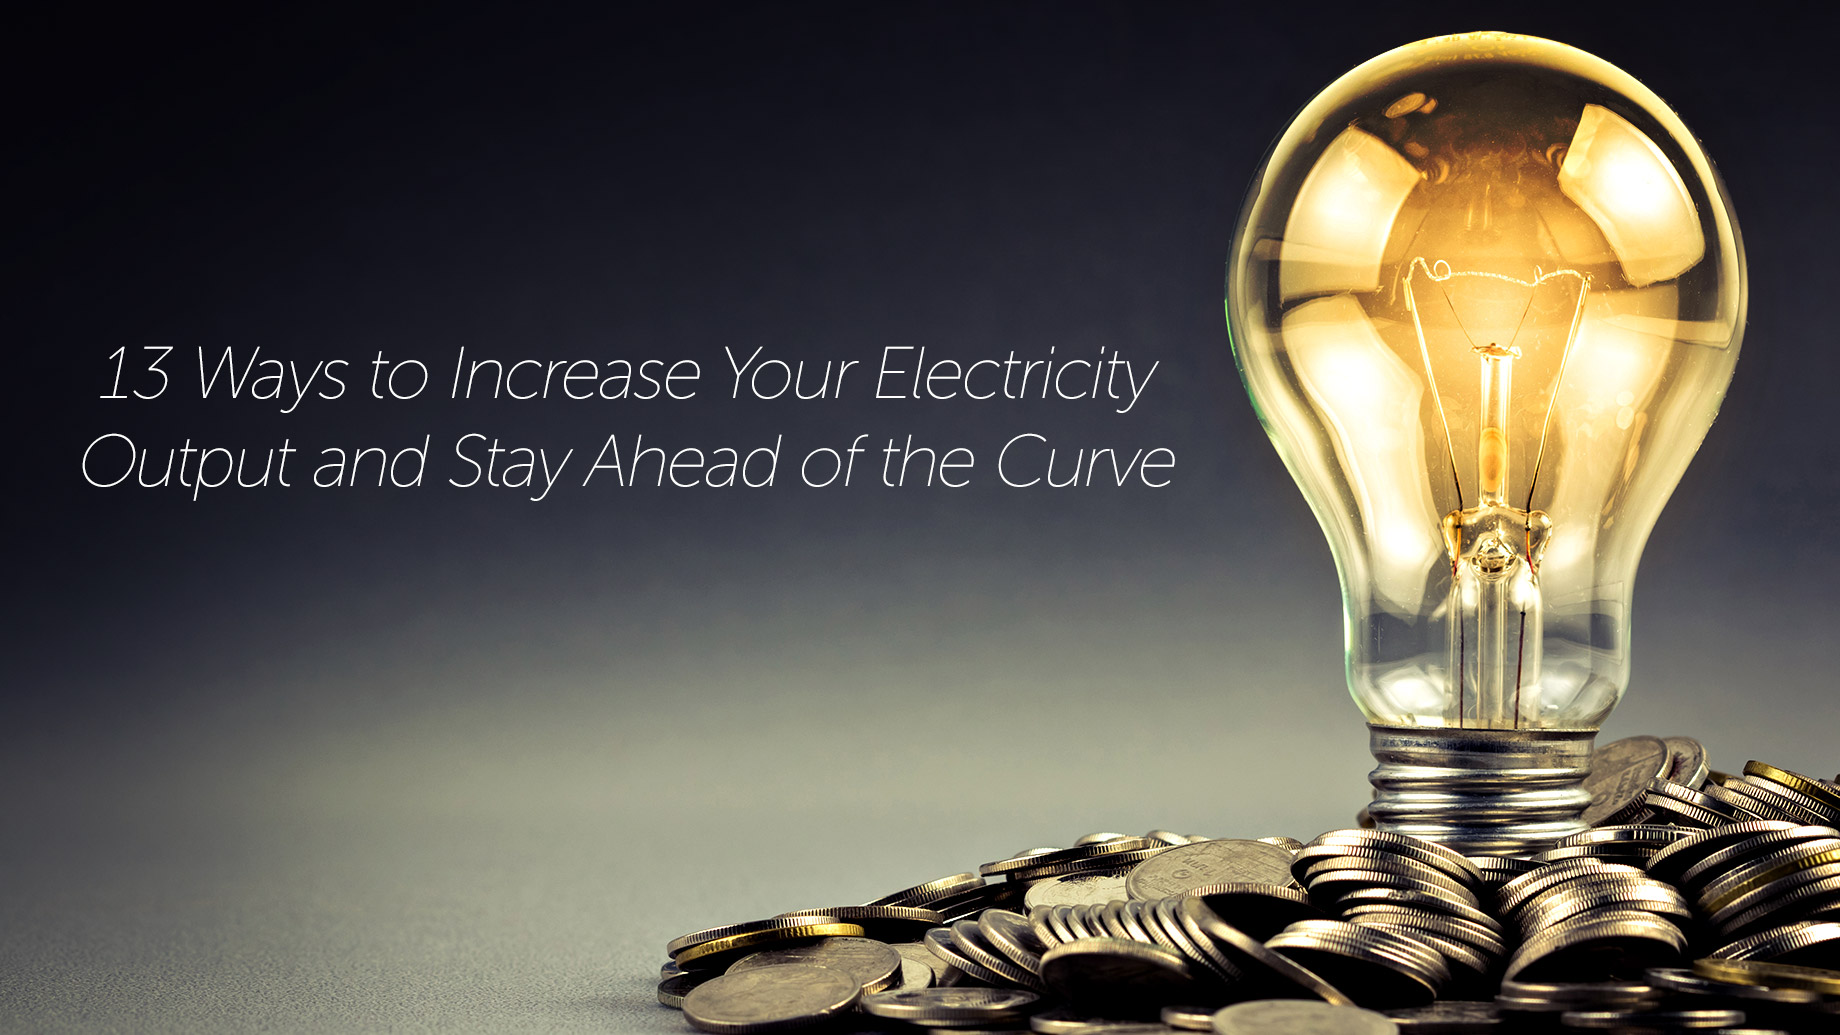 13 Ways to Increase Your Electricity Output and Stay Ahead of the Curve